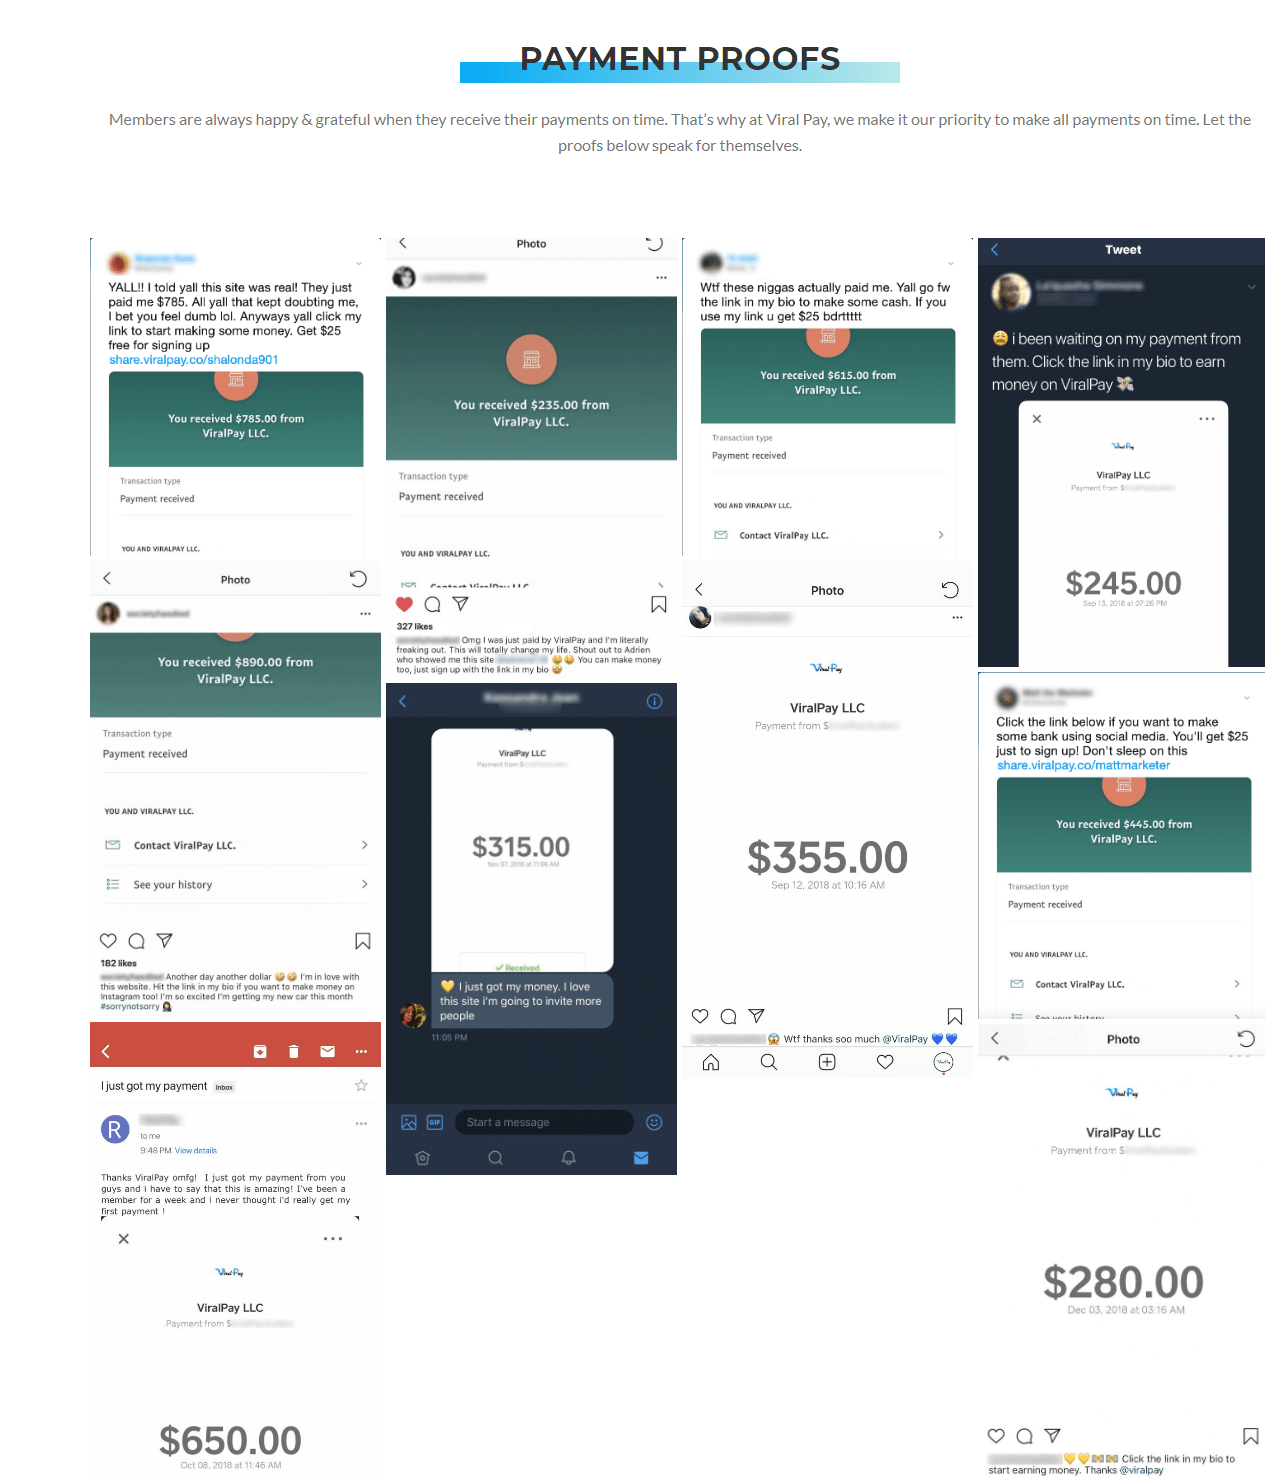 Viral Pay Proof of Payments